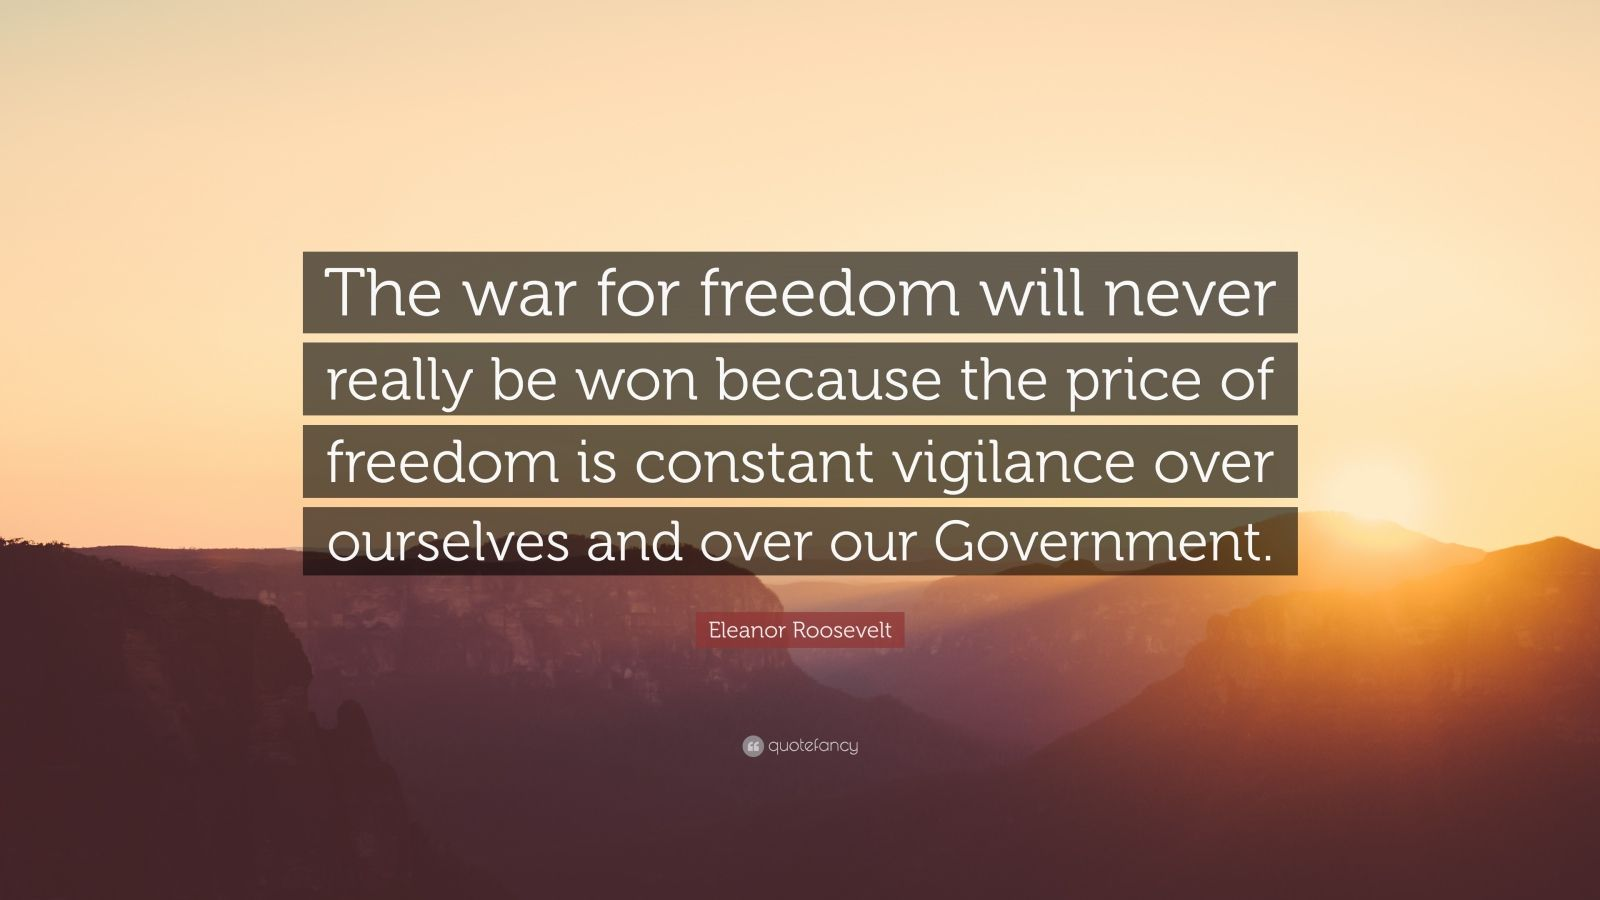 """Eleanor Roosevelt Quote: """"The war for freedom will never really be won because the price of freedom is constant vigilance over ourselves and over our Government."""""""